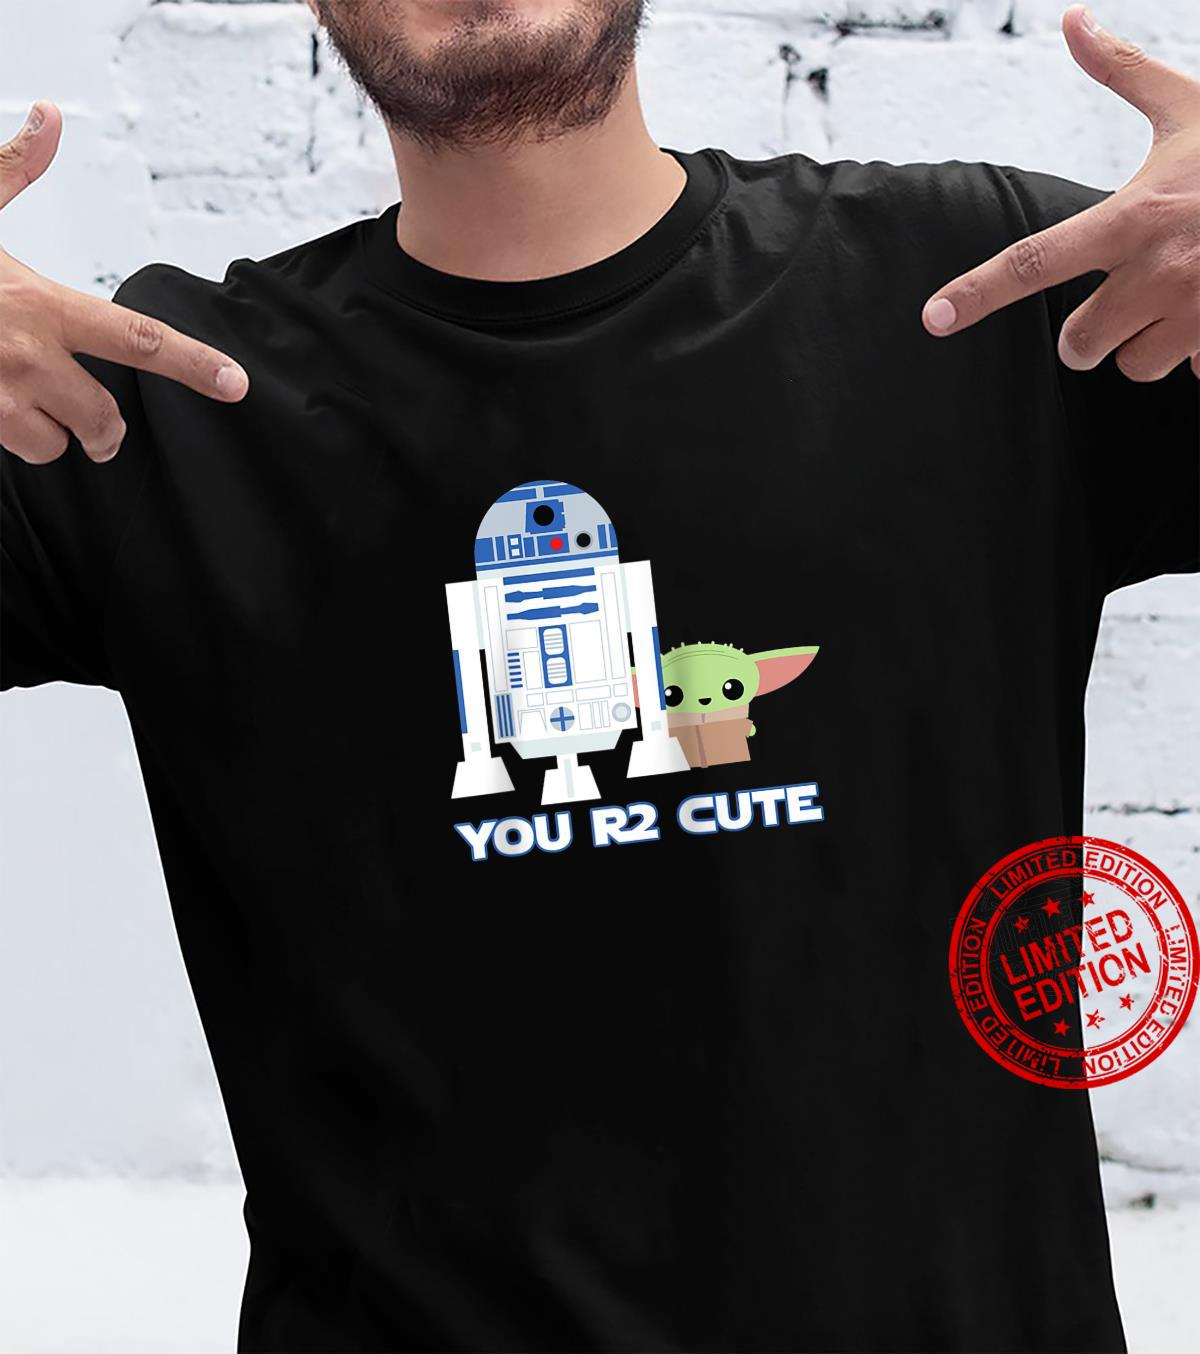 Star Wars The Mandalorian the Child and R2D2 You R2 Cute Shirt